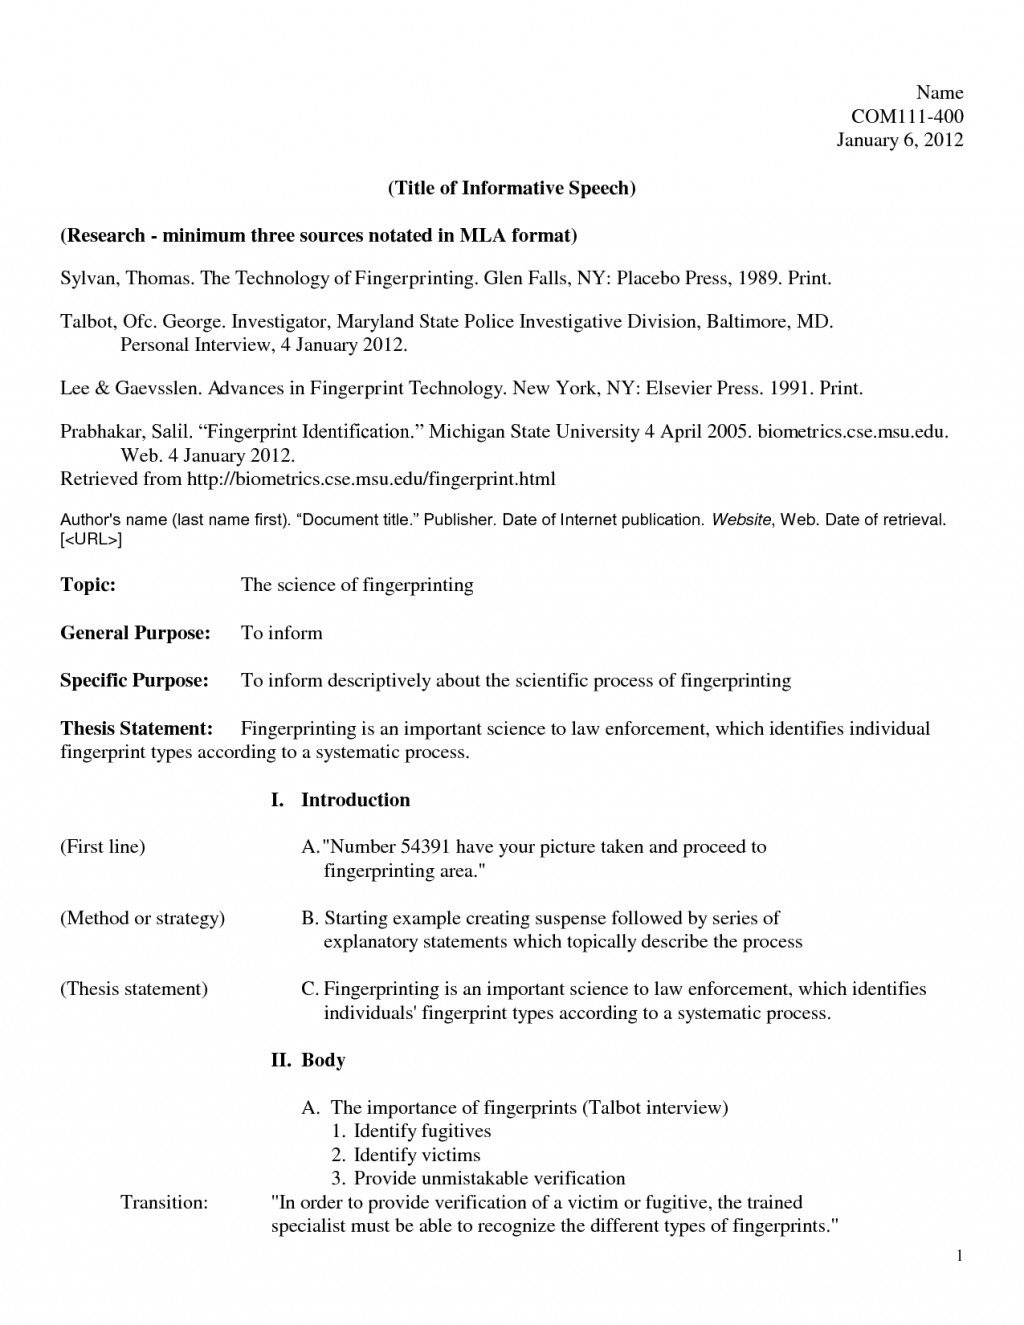 018 Informative Speech Outline Example Mla 472980 How To Write An Sensational Essay 4th Grade Thesis Large